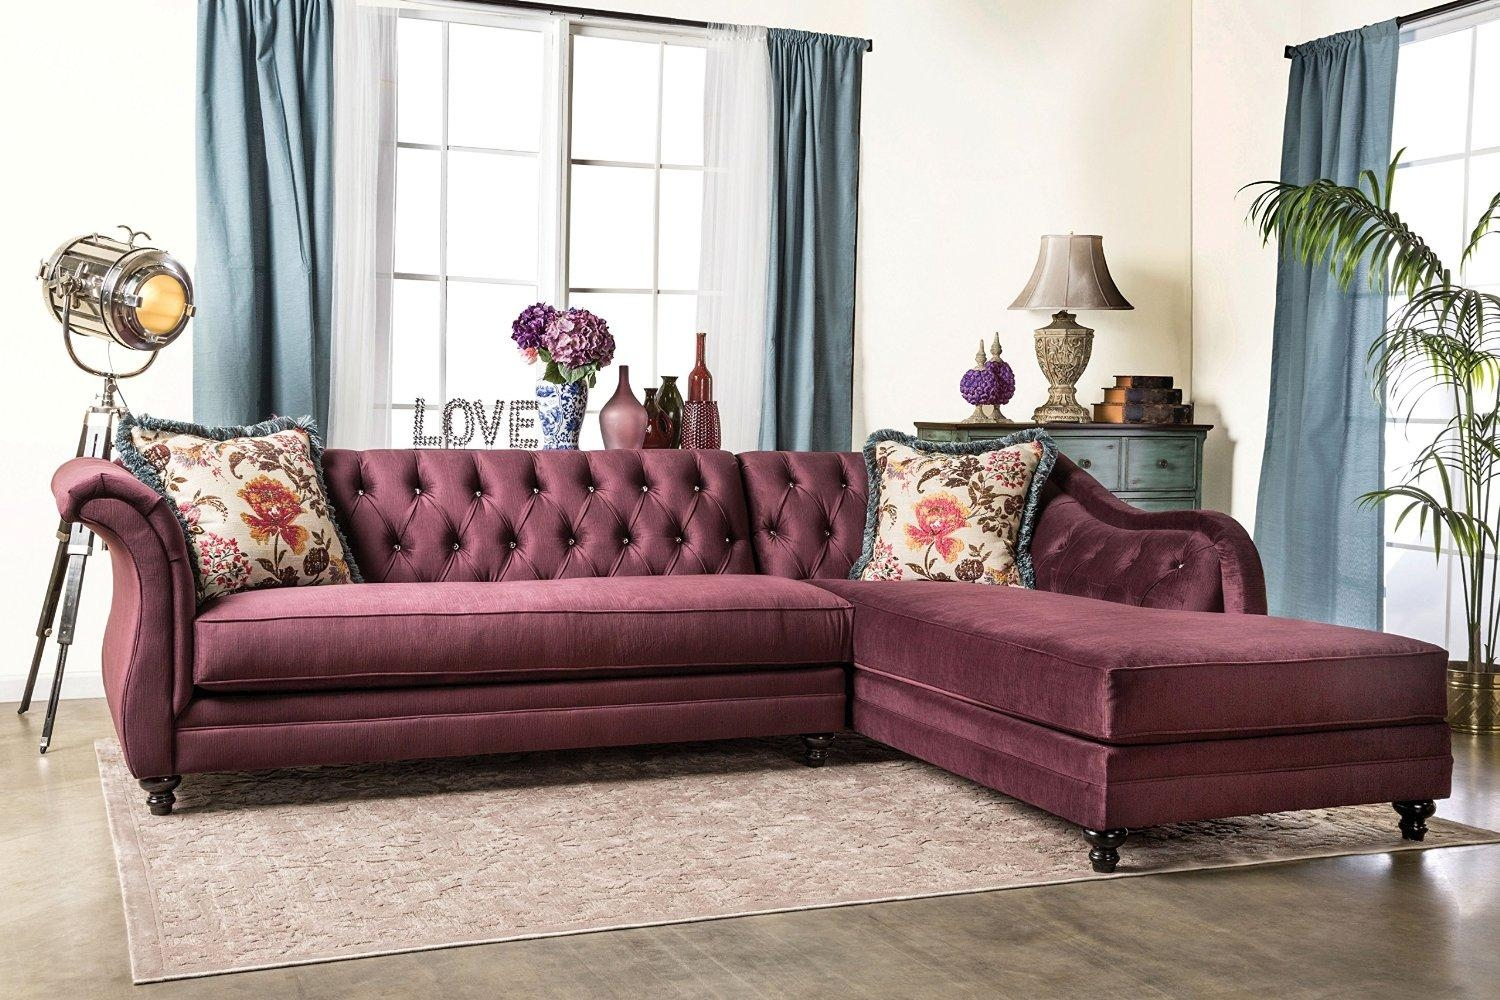 25 Best Chesterfield Sofas To Buy In 2017 throughout Leather Chesterfield Sofas